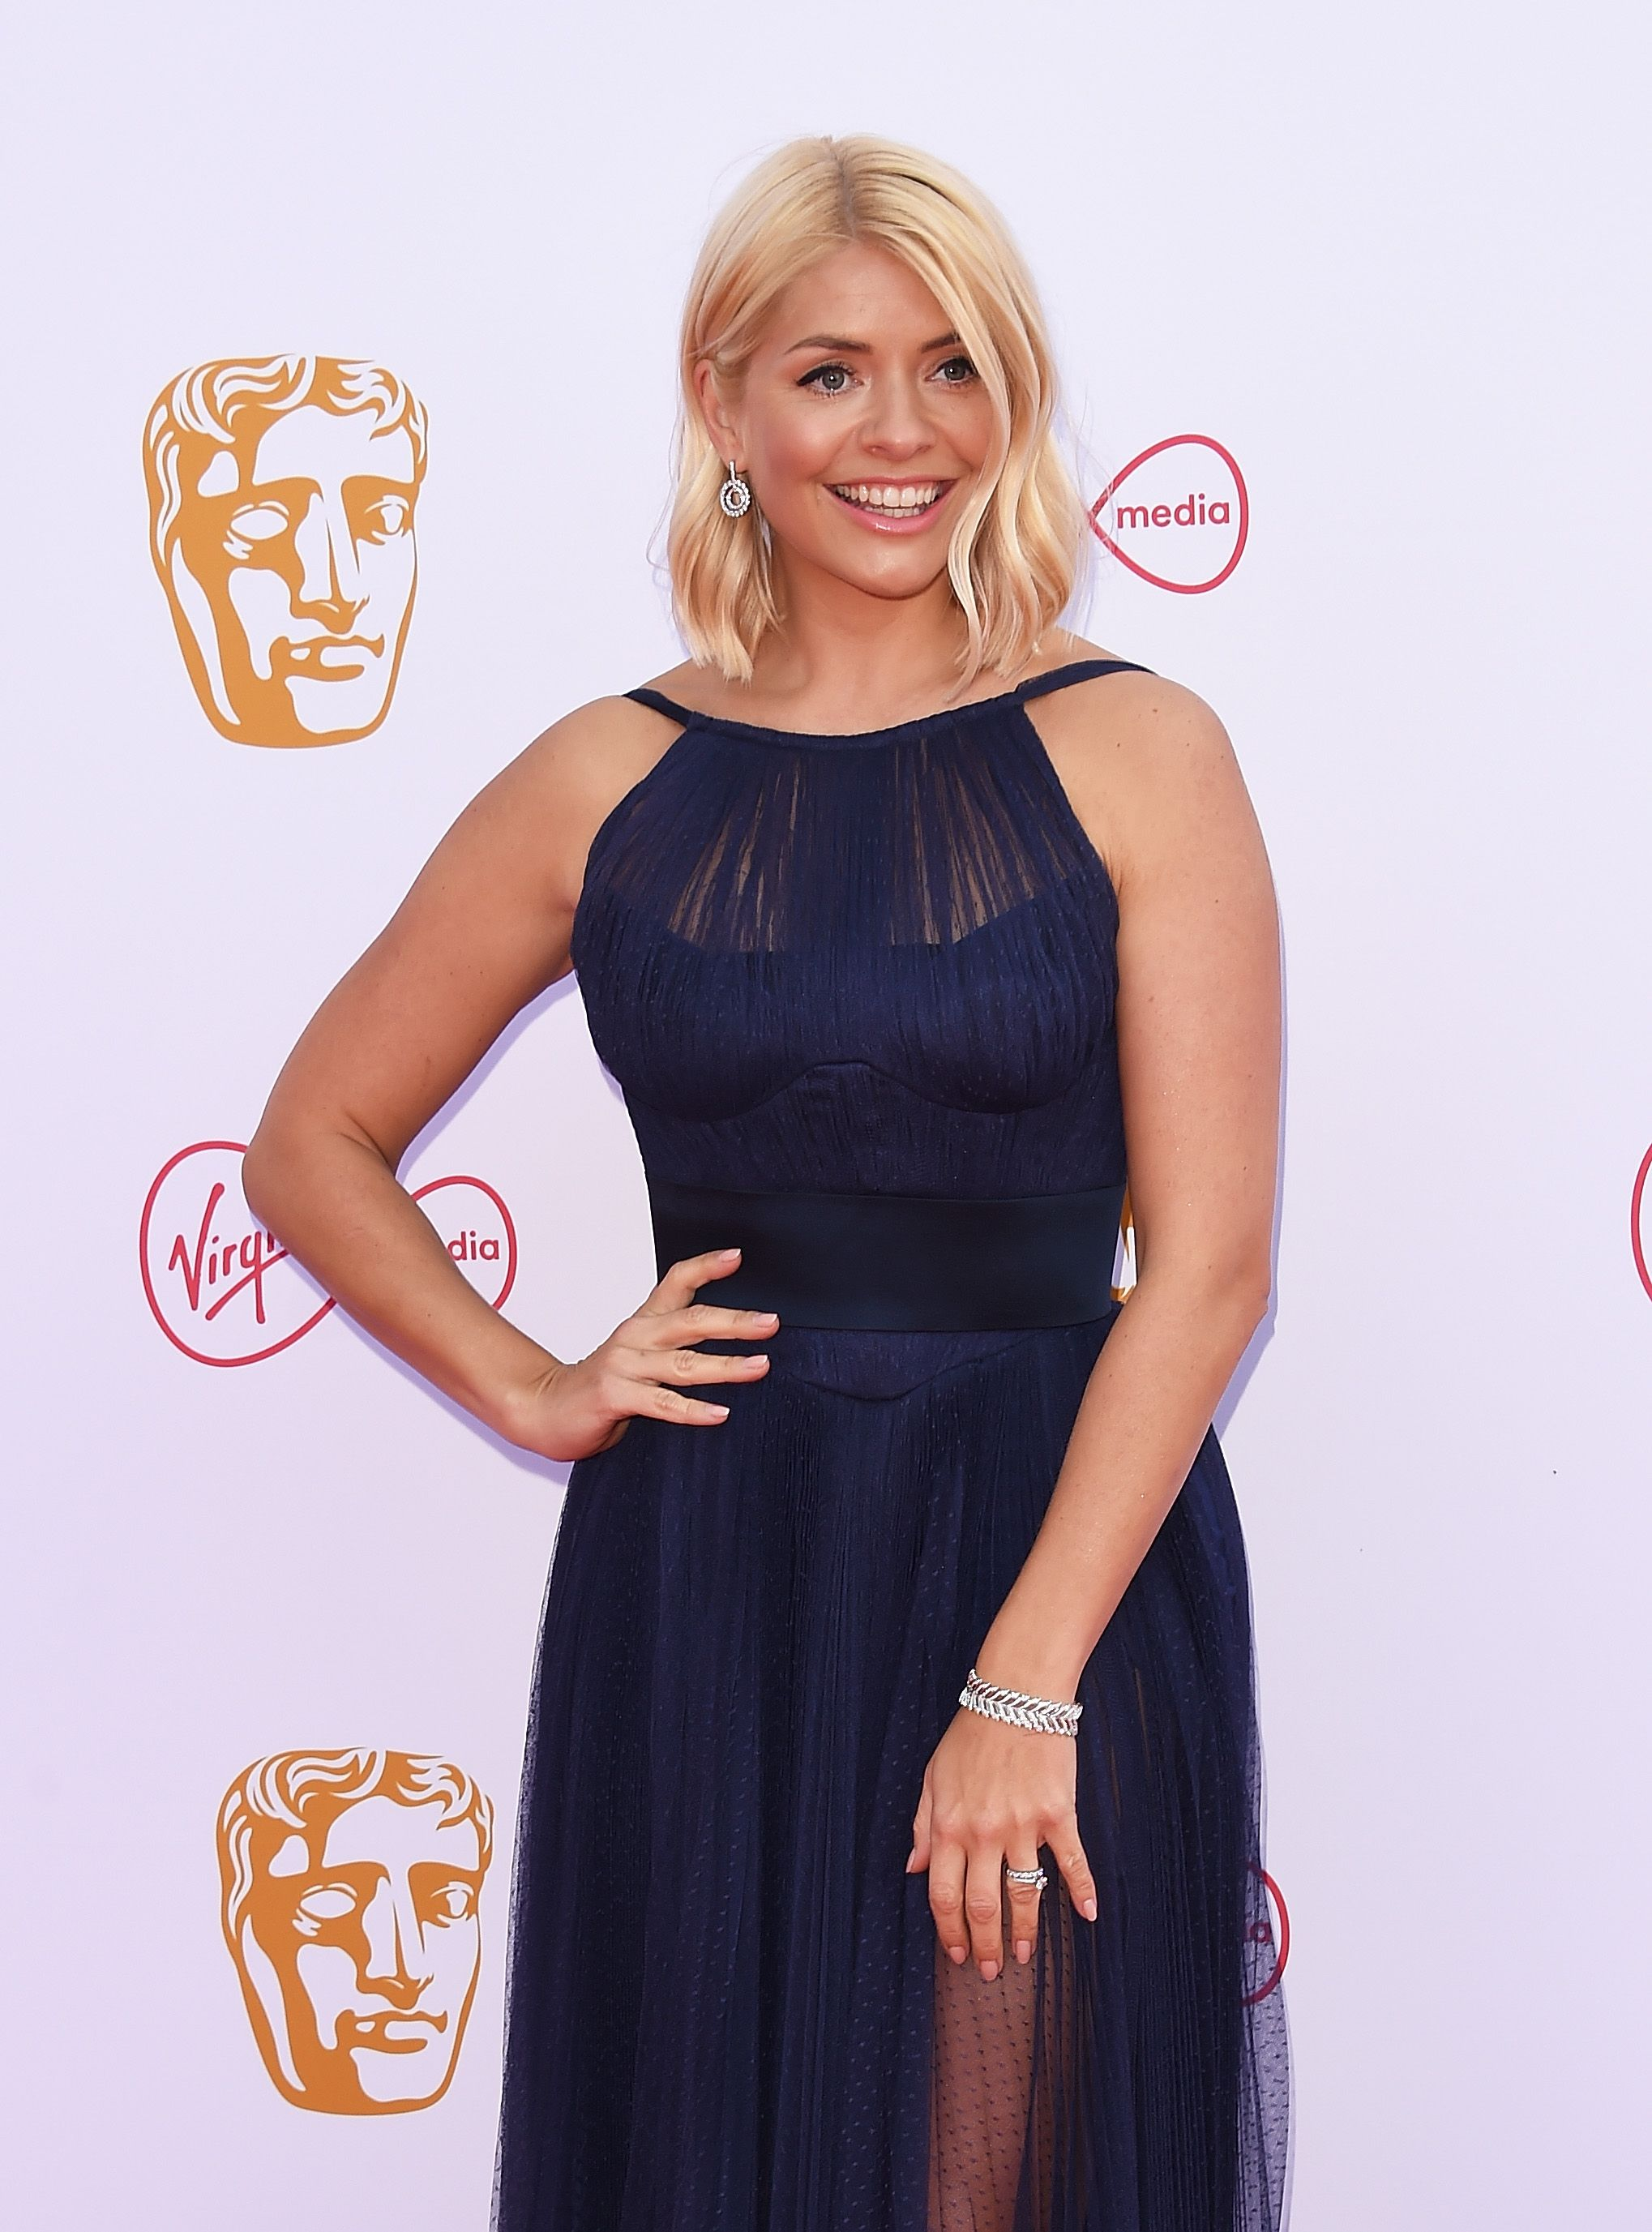 Holly Willoughby shares sweet family pic to mark the end of her holiday